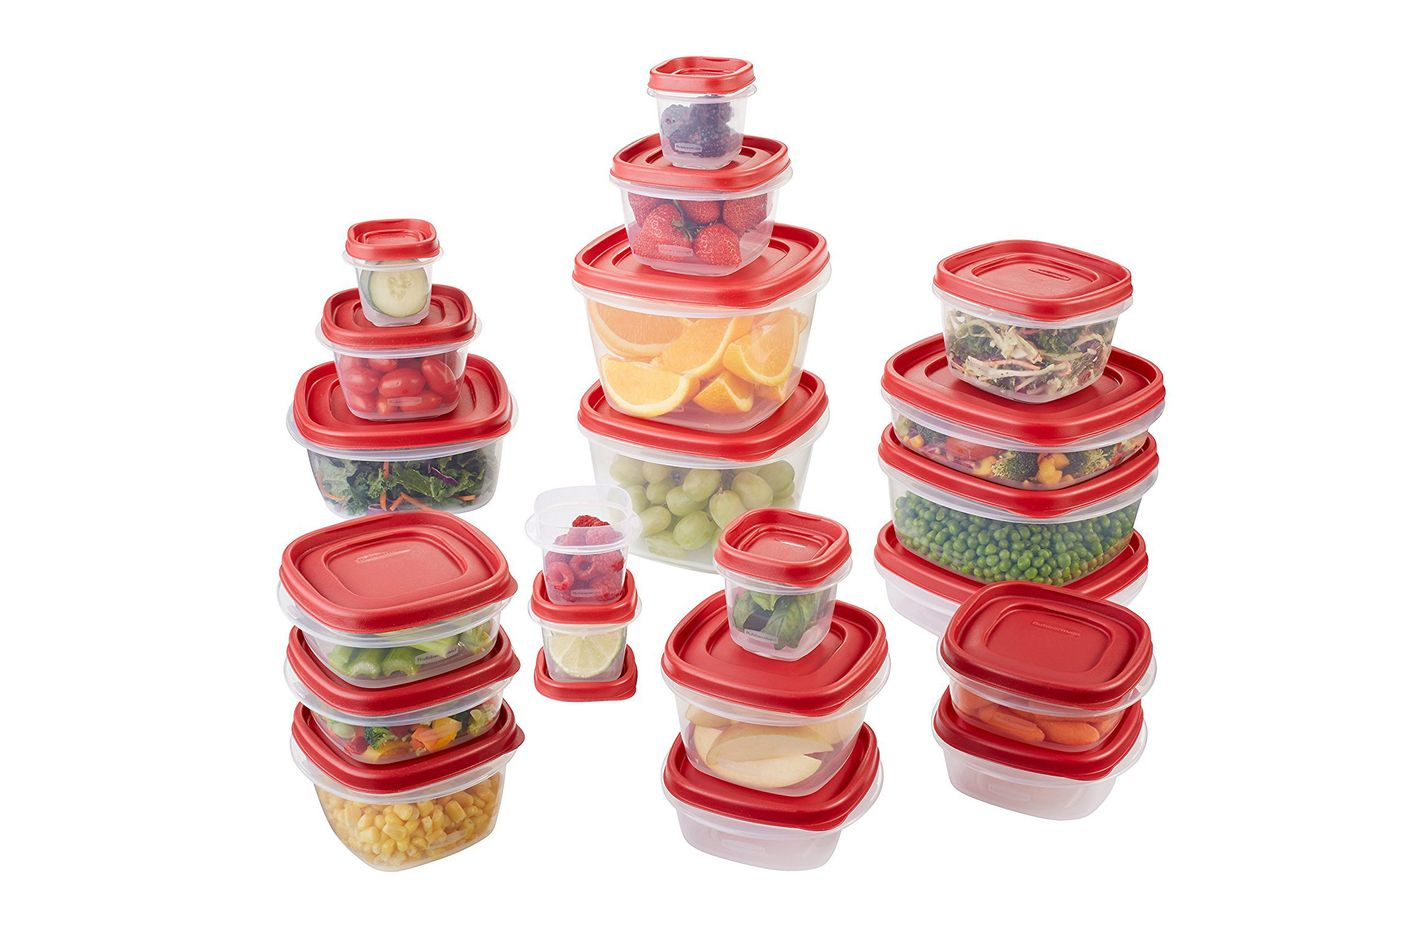 best food storage containers  sc 1 st  NYMag & The Best Food-Storage Containers on Amazon Tupperware